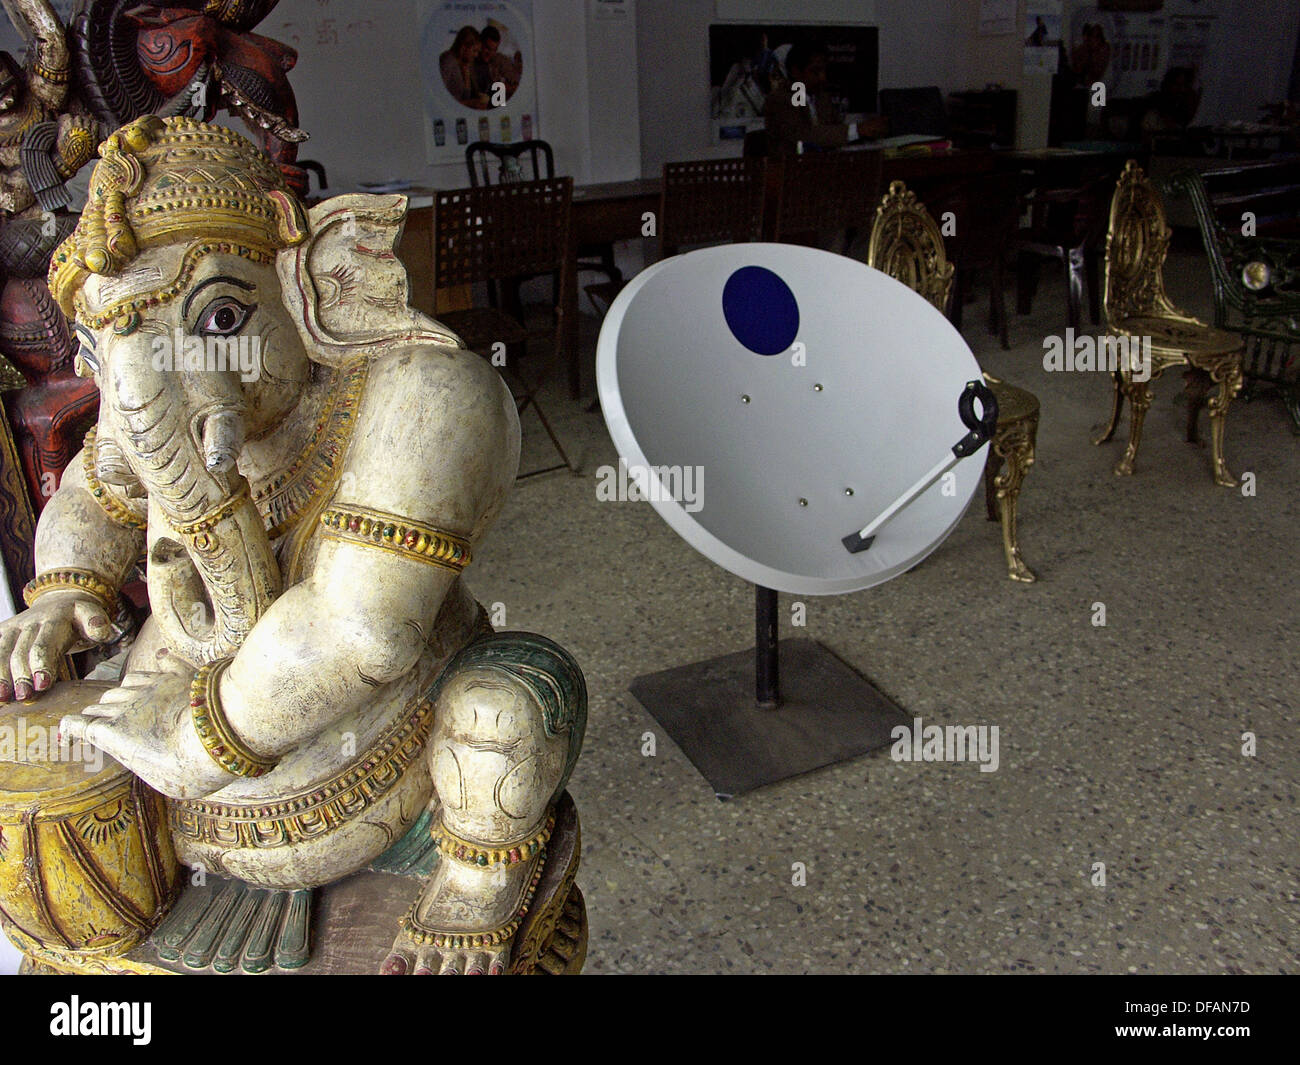 Satellite TV dish and Hindu deity (Ganesha) share floor space in a shop. Ooty. Tamil Nadu, India - Stock Image